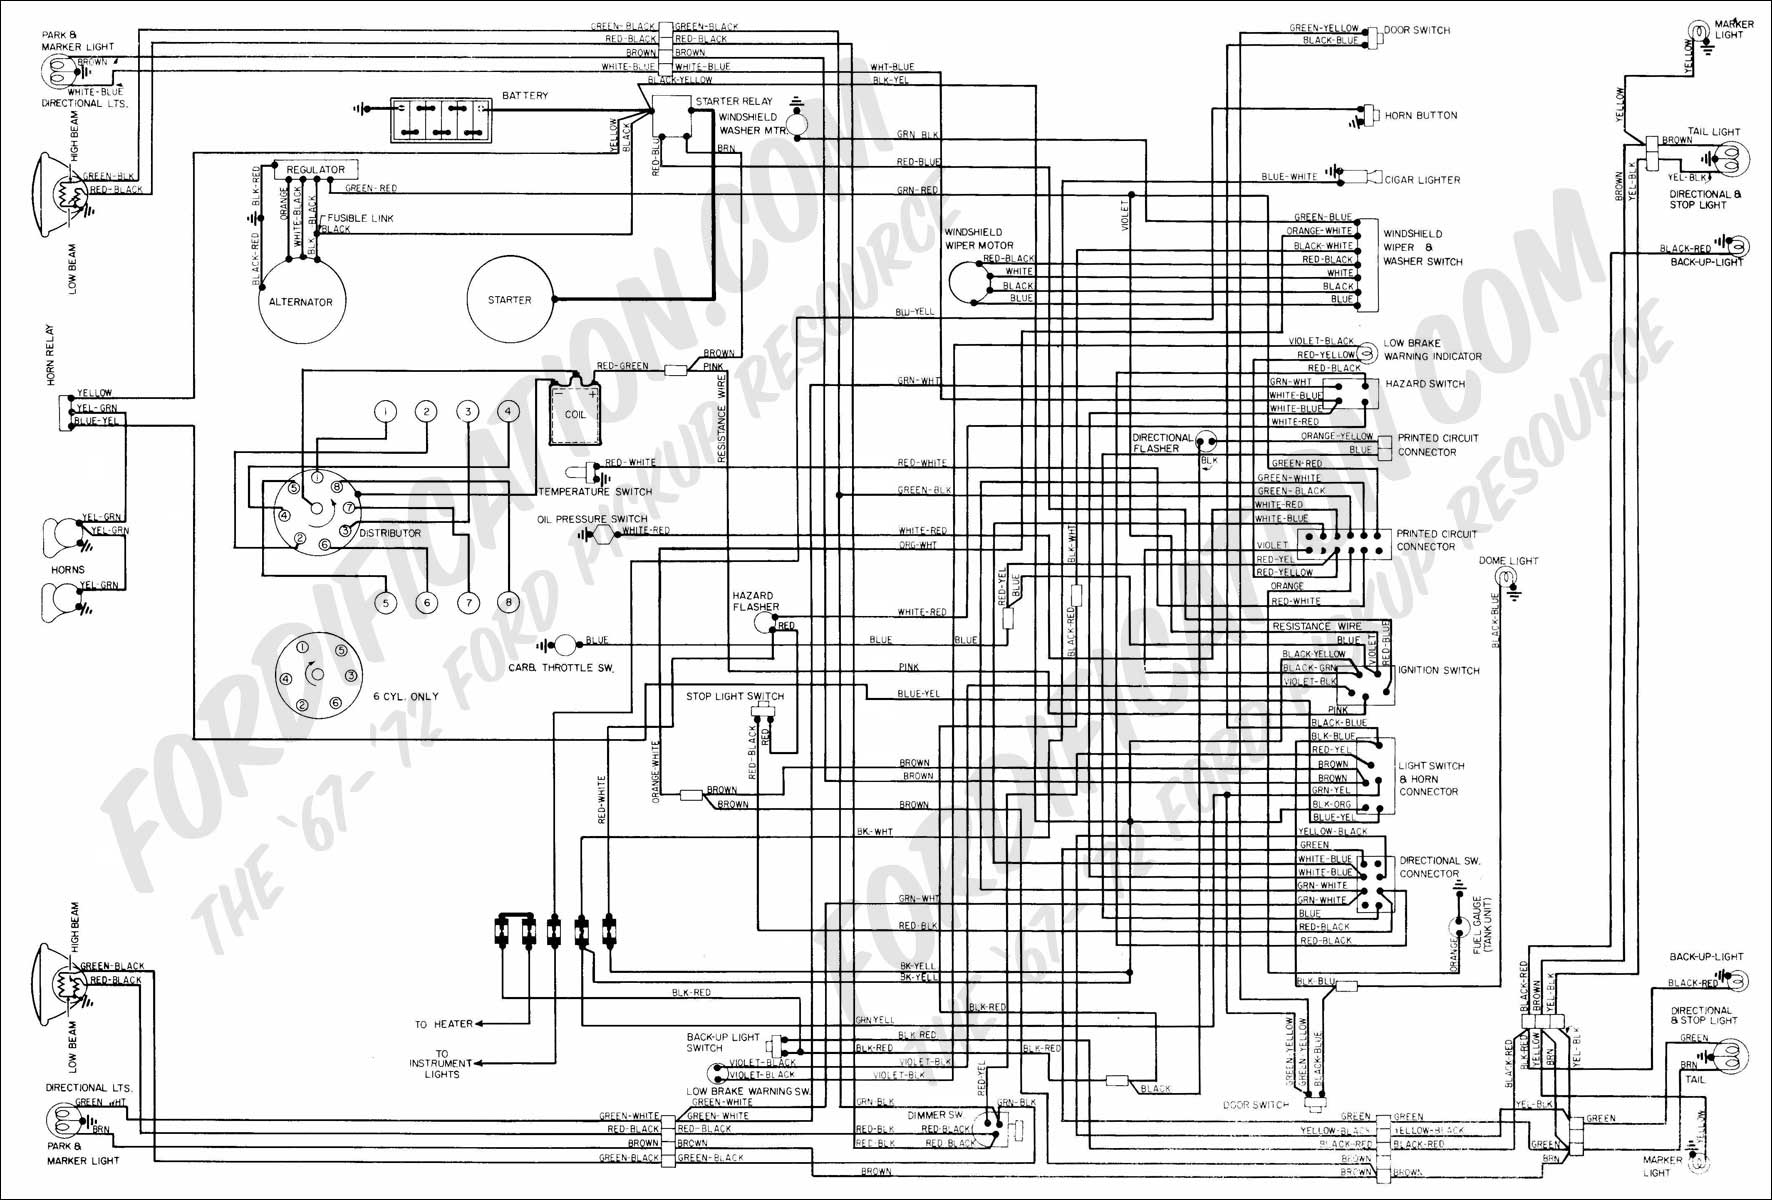 2000 vw beetle transmission wiring diagram with Schematics H on 1 9 Tdi Engine Diagram as well Tdi Engine Diagram in addition 1029056 6 9 7 3 Idi Diesel Tech Info 4 besides Schematics h furthermore 2007 Gmc Envoy Thermostat Location.